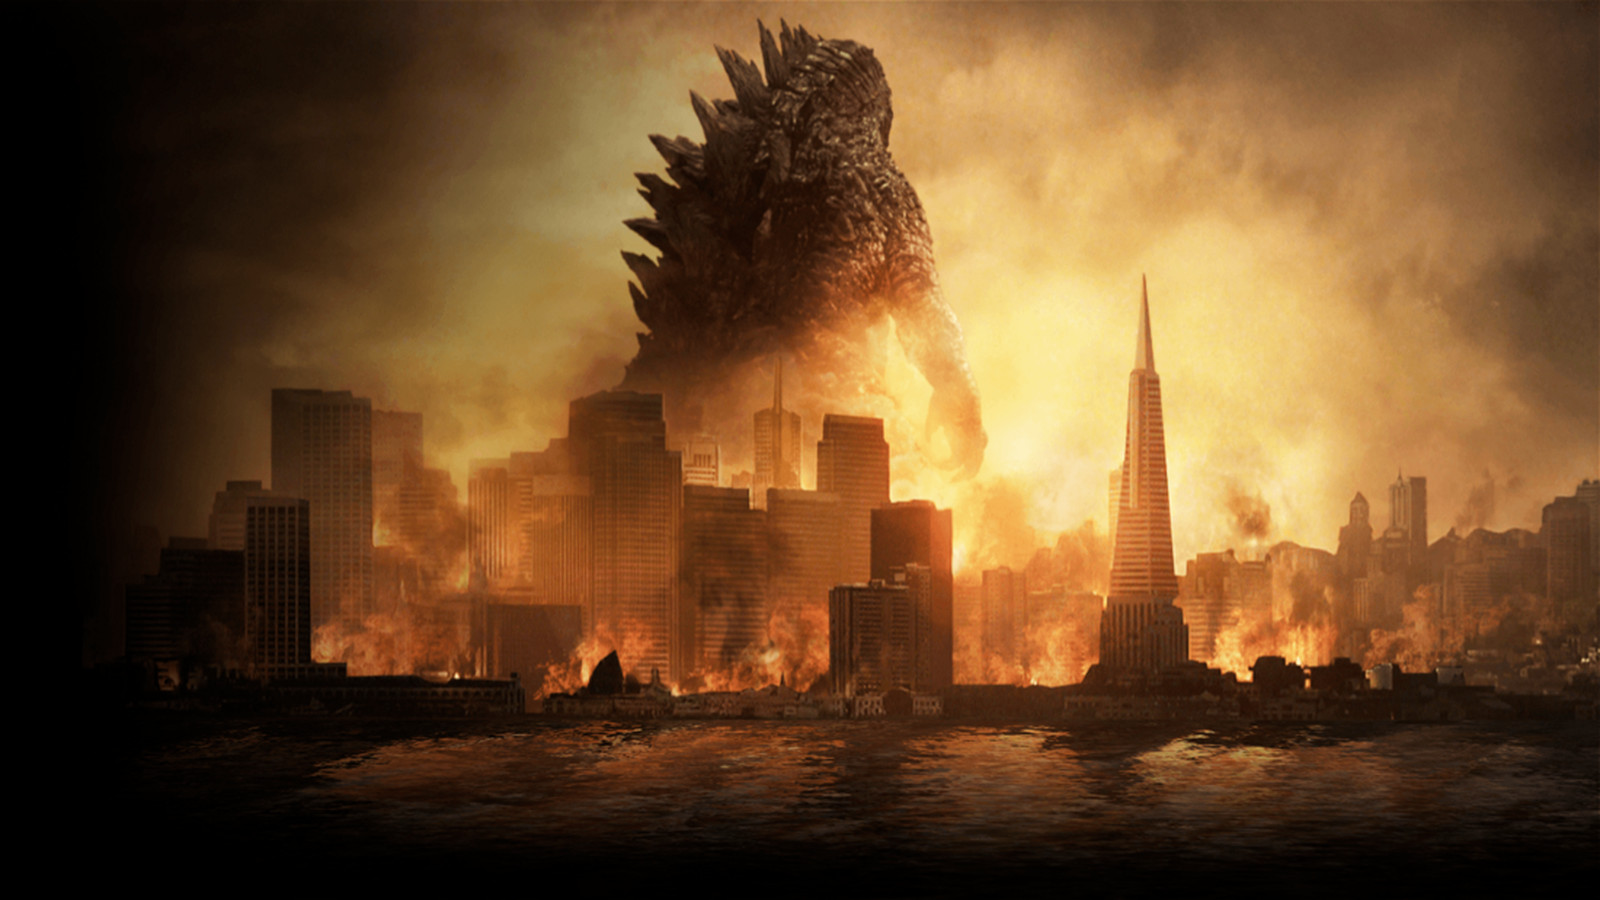 Monster Energy Wallpaper For Phones 3d Air Force Discusses How It Would Respond To Godzilla The